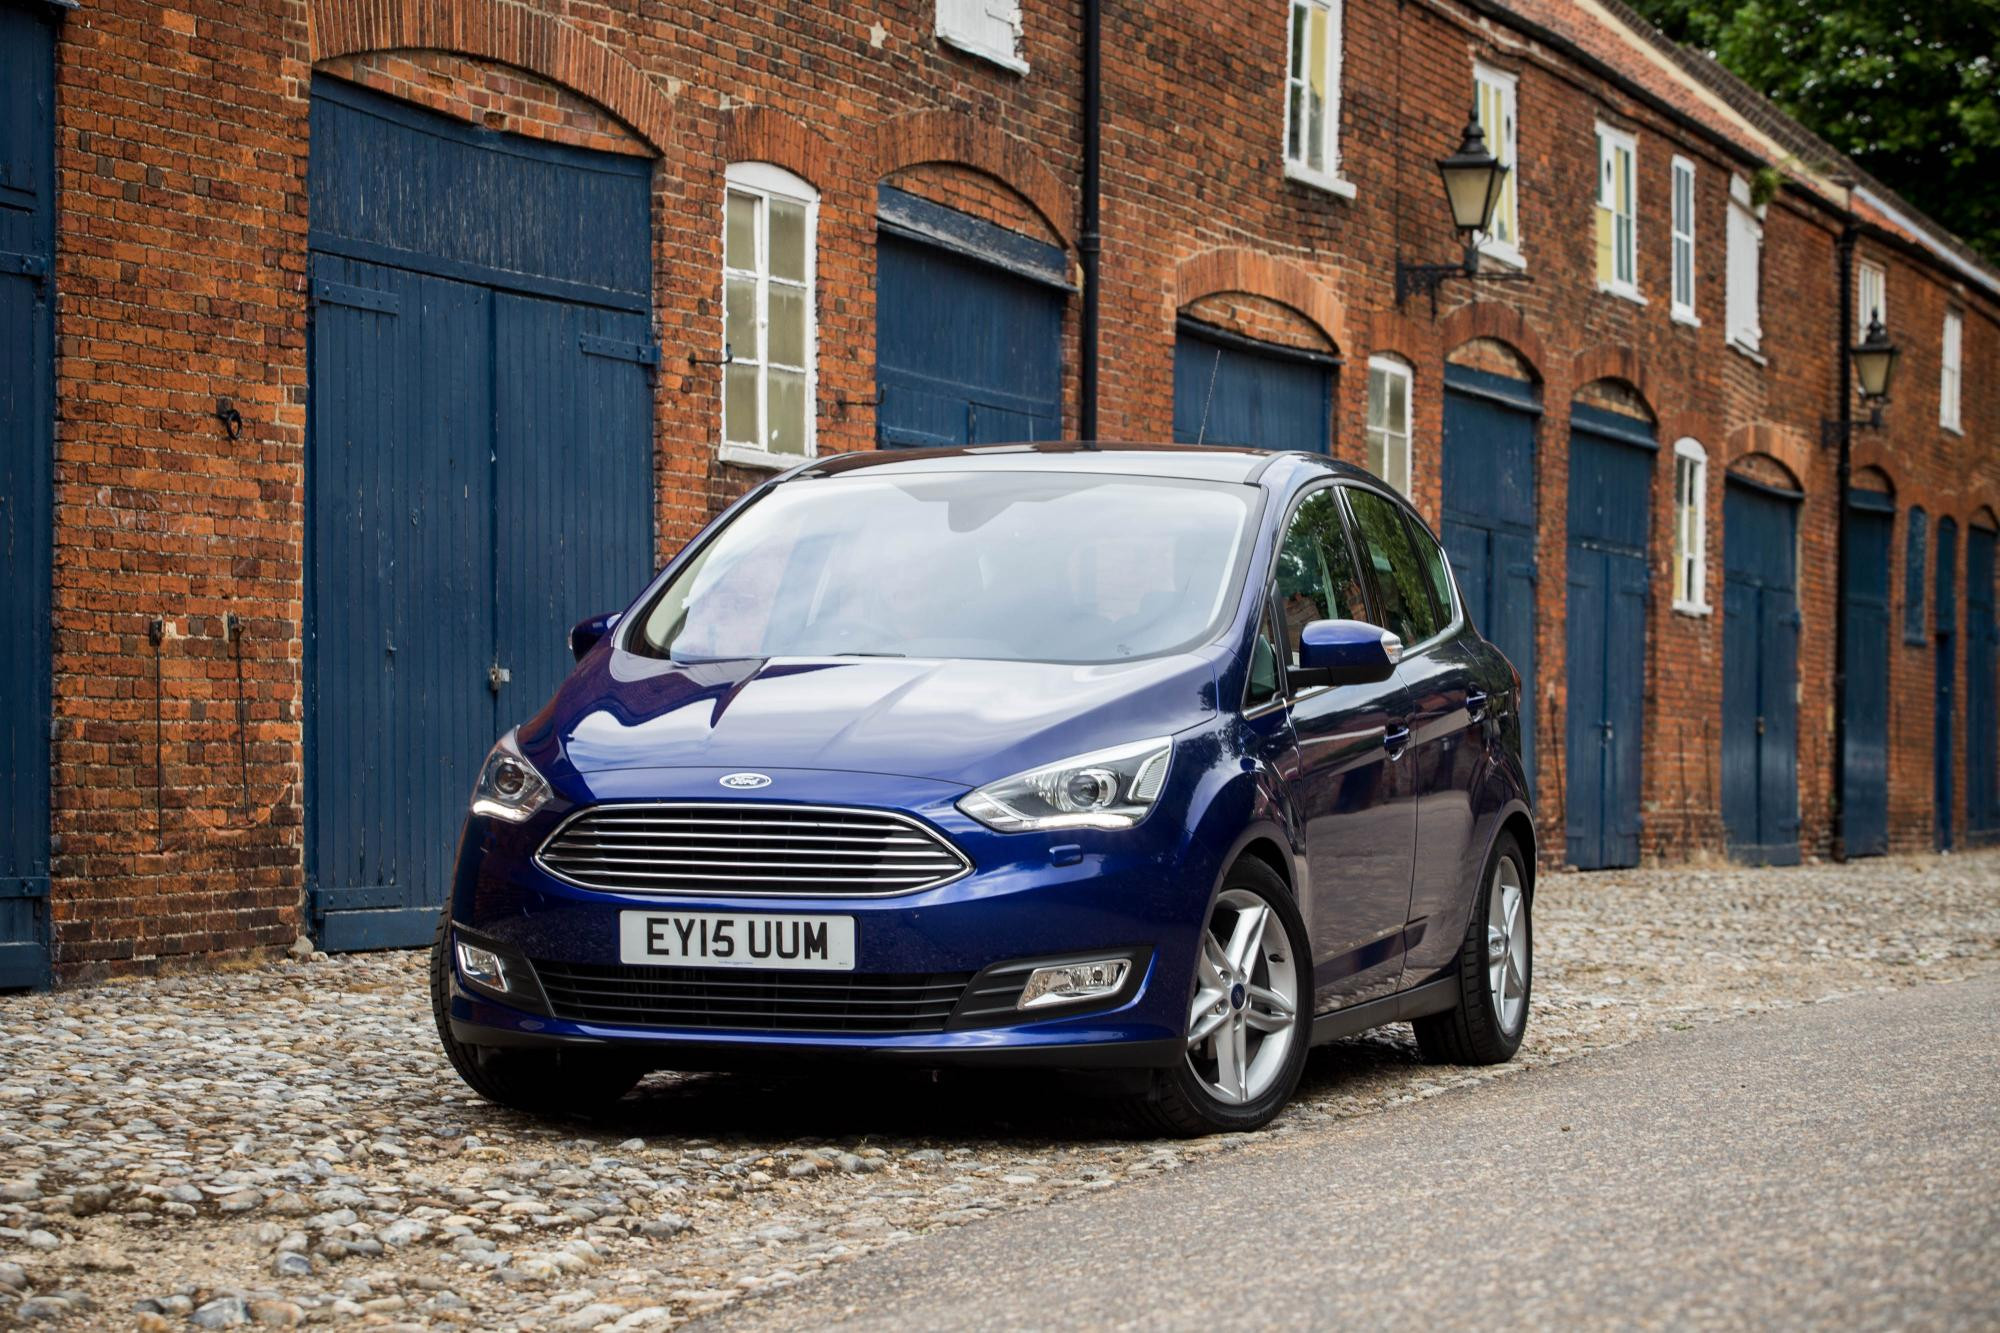 Blue Ford C-Max parked facing front on a cobbled street in front of a row of workshops